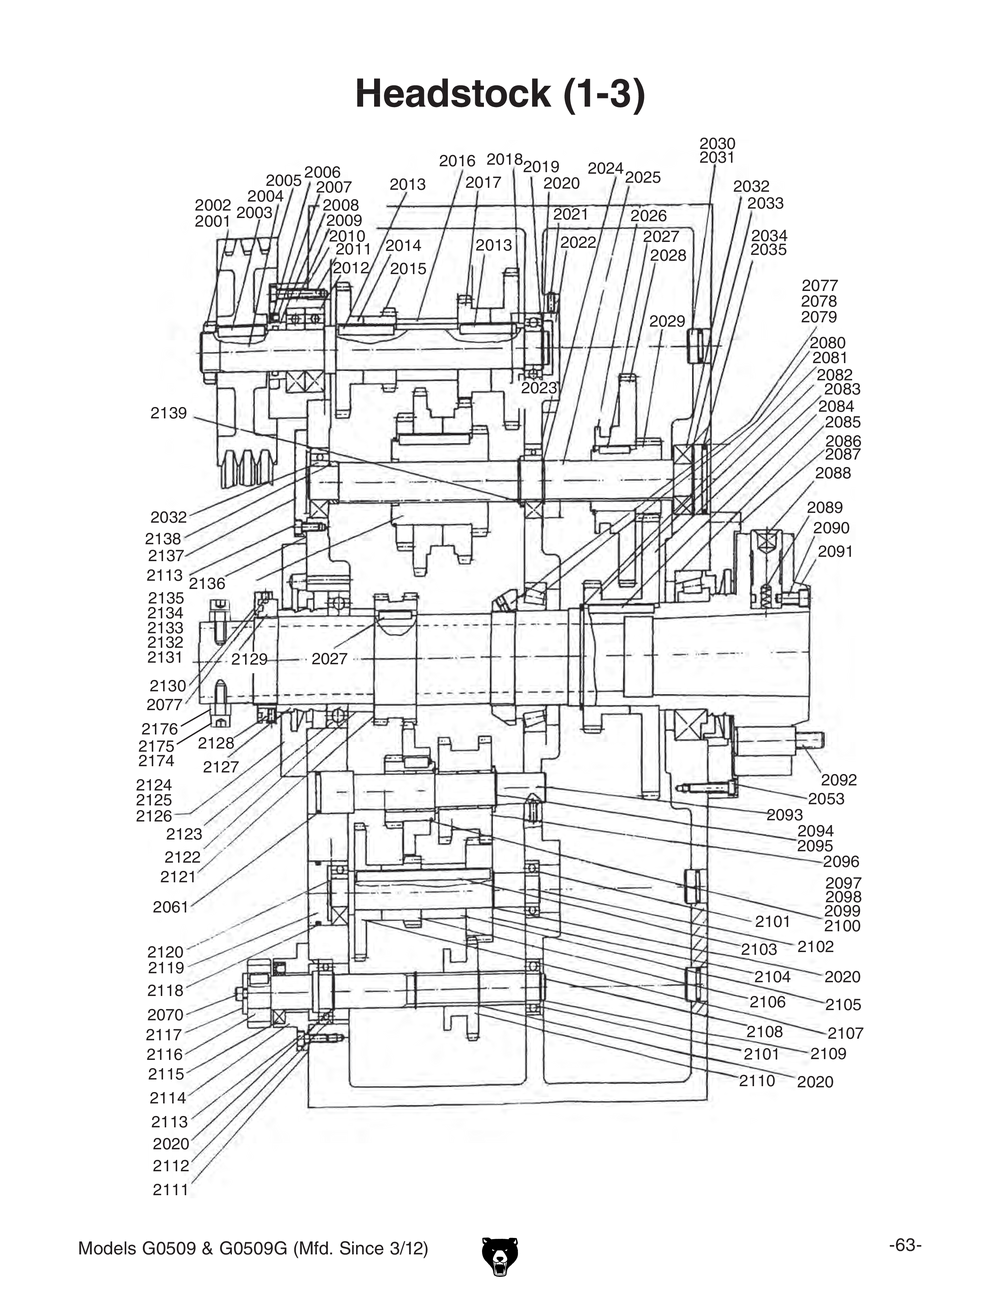 2005 Hayabusa Wiring Diagram Schematic Diagrams 2008 Suzuki Gsxr600 Solutions 2001 Gsxr 600 2002